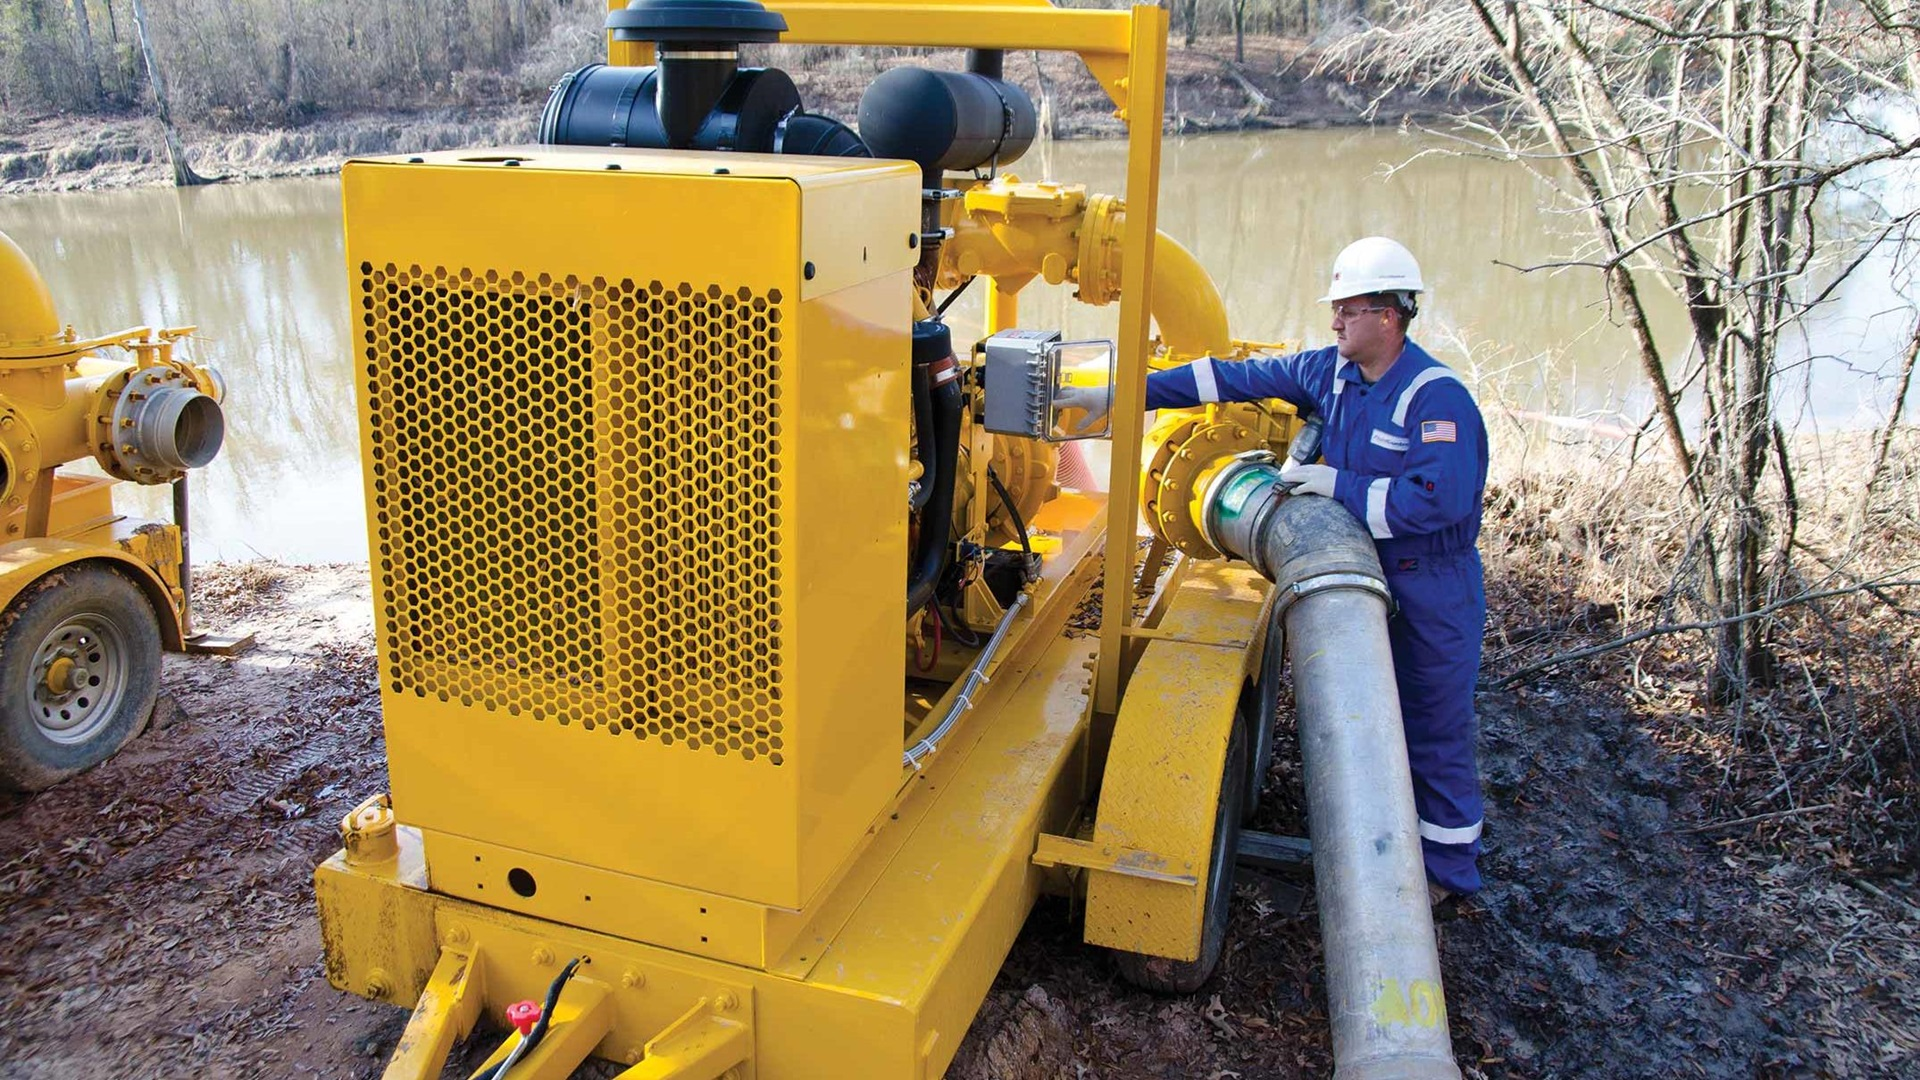 A technician manages water transfer equipment onsite